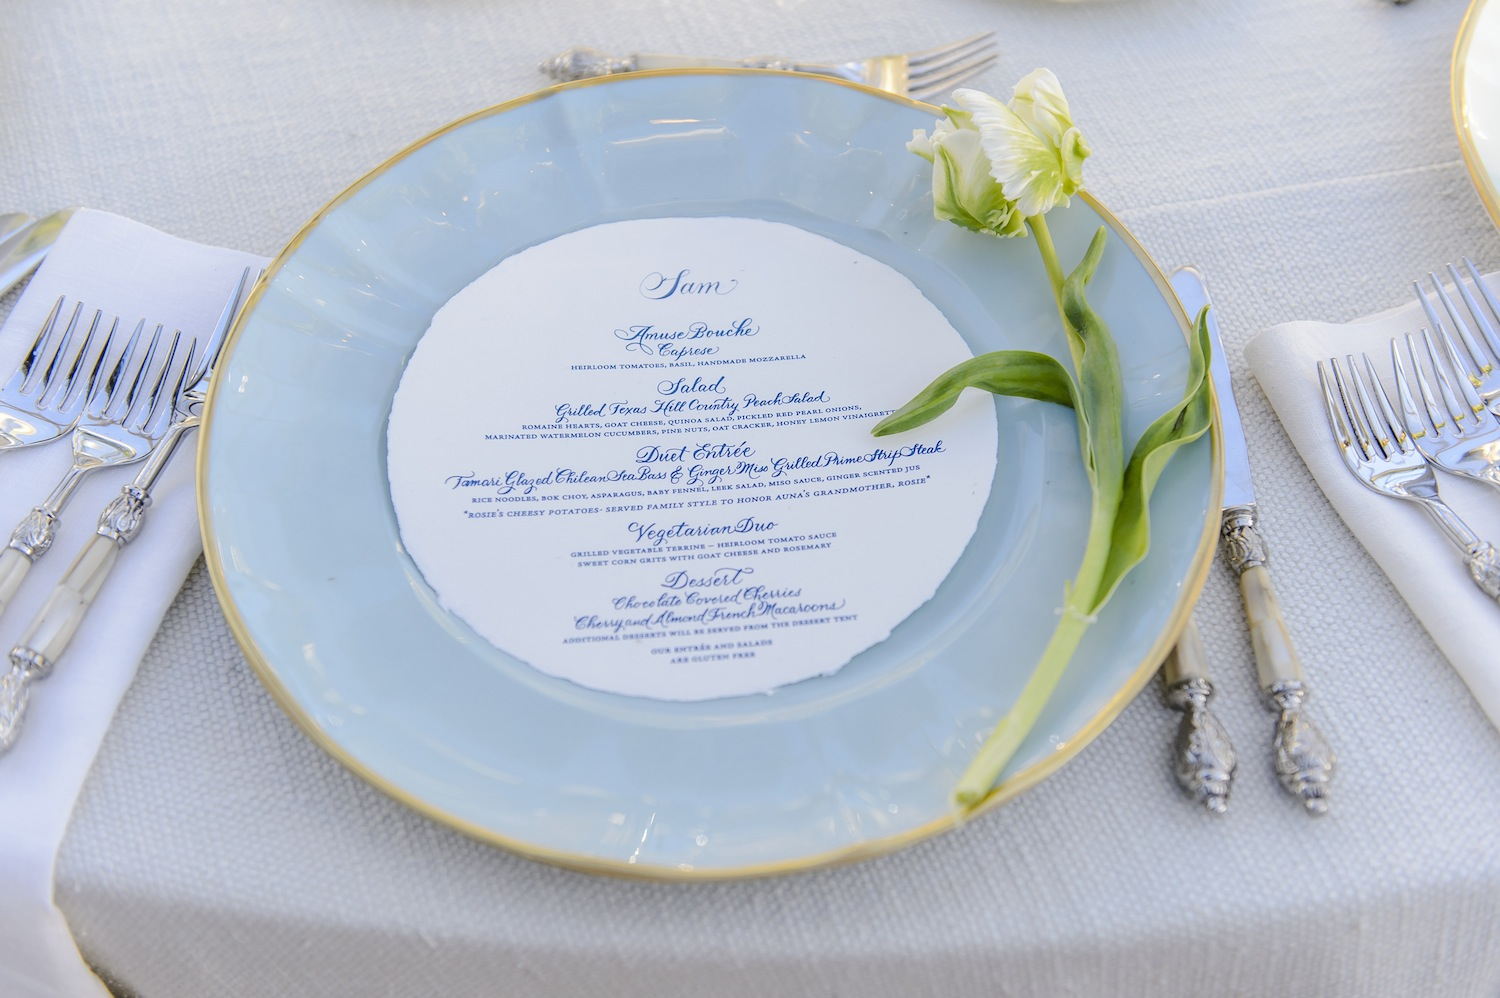 Light Blue Fine China Charger Plate With Gold Trim For Wedding Reception Place Setting